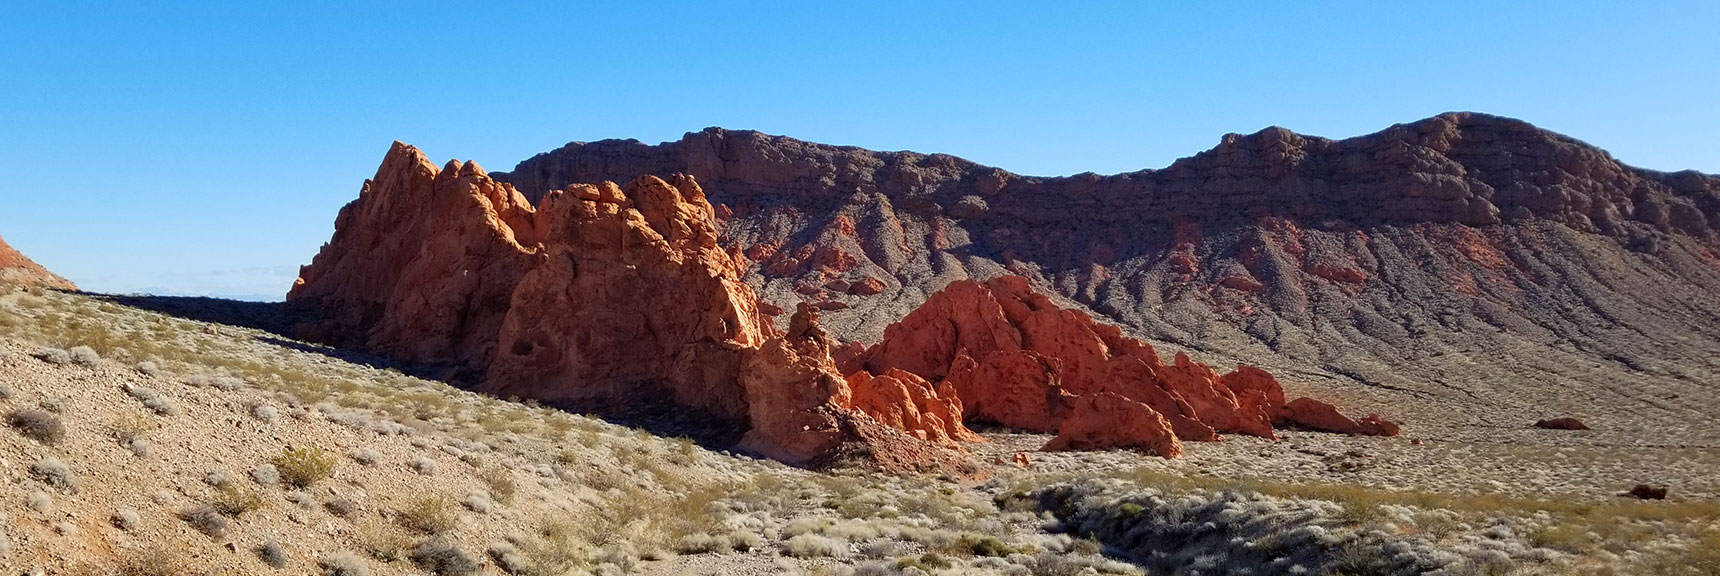 Unique Perspective of the Pinnacles from Above Pinnacles Loop Trail in Valley of Fire State Park, Nevada